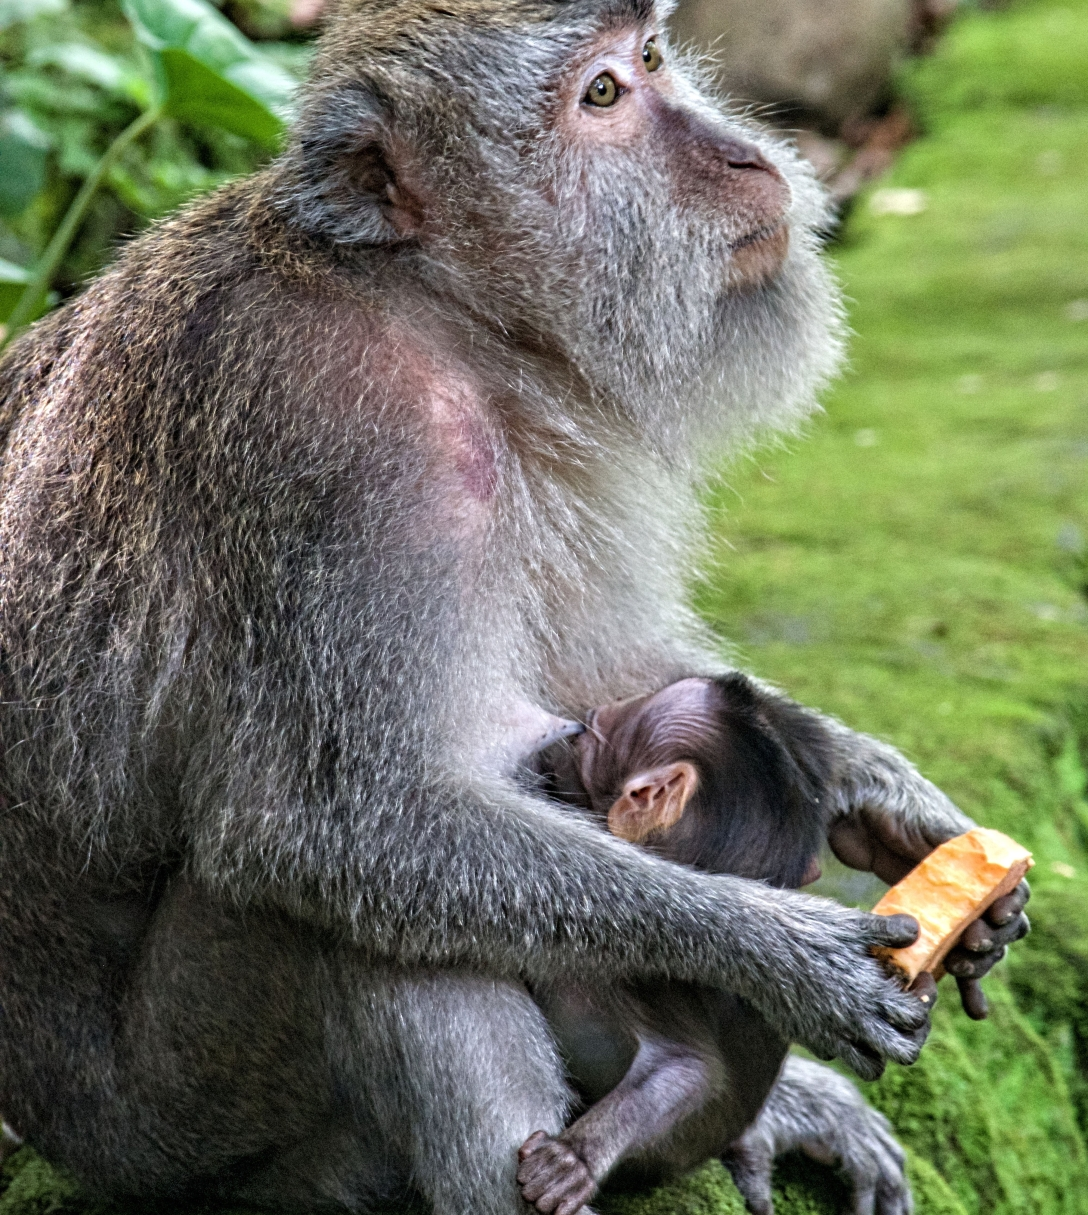 baby primate nursing from its mother